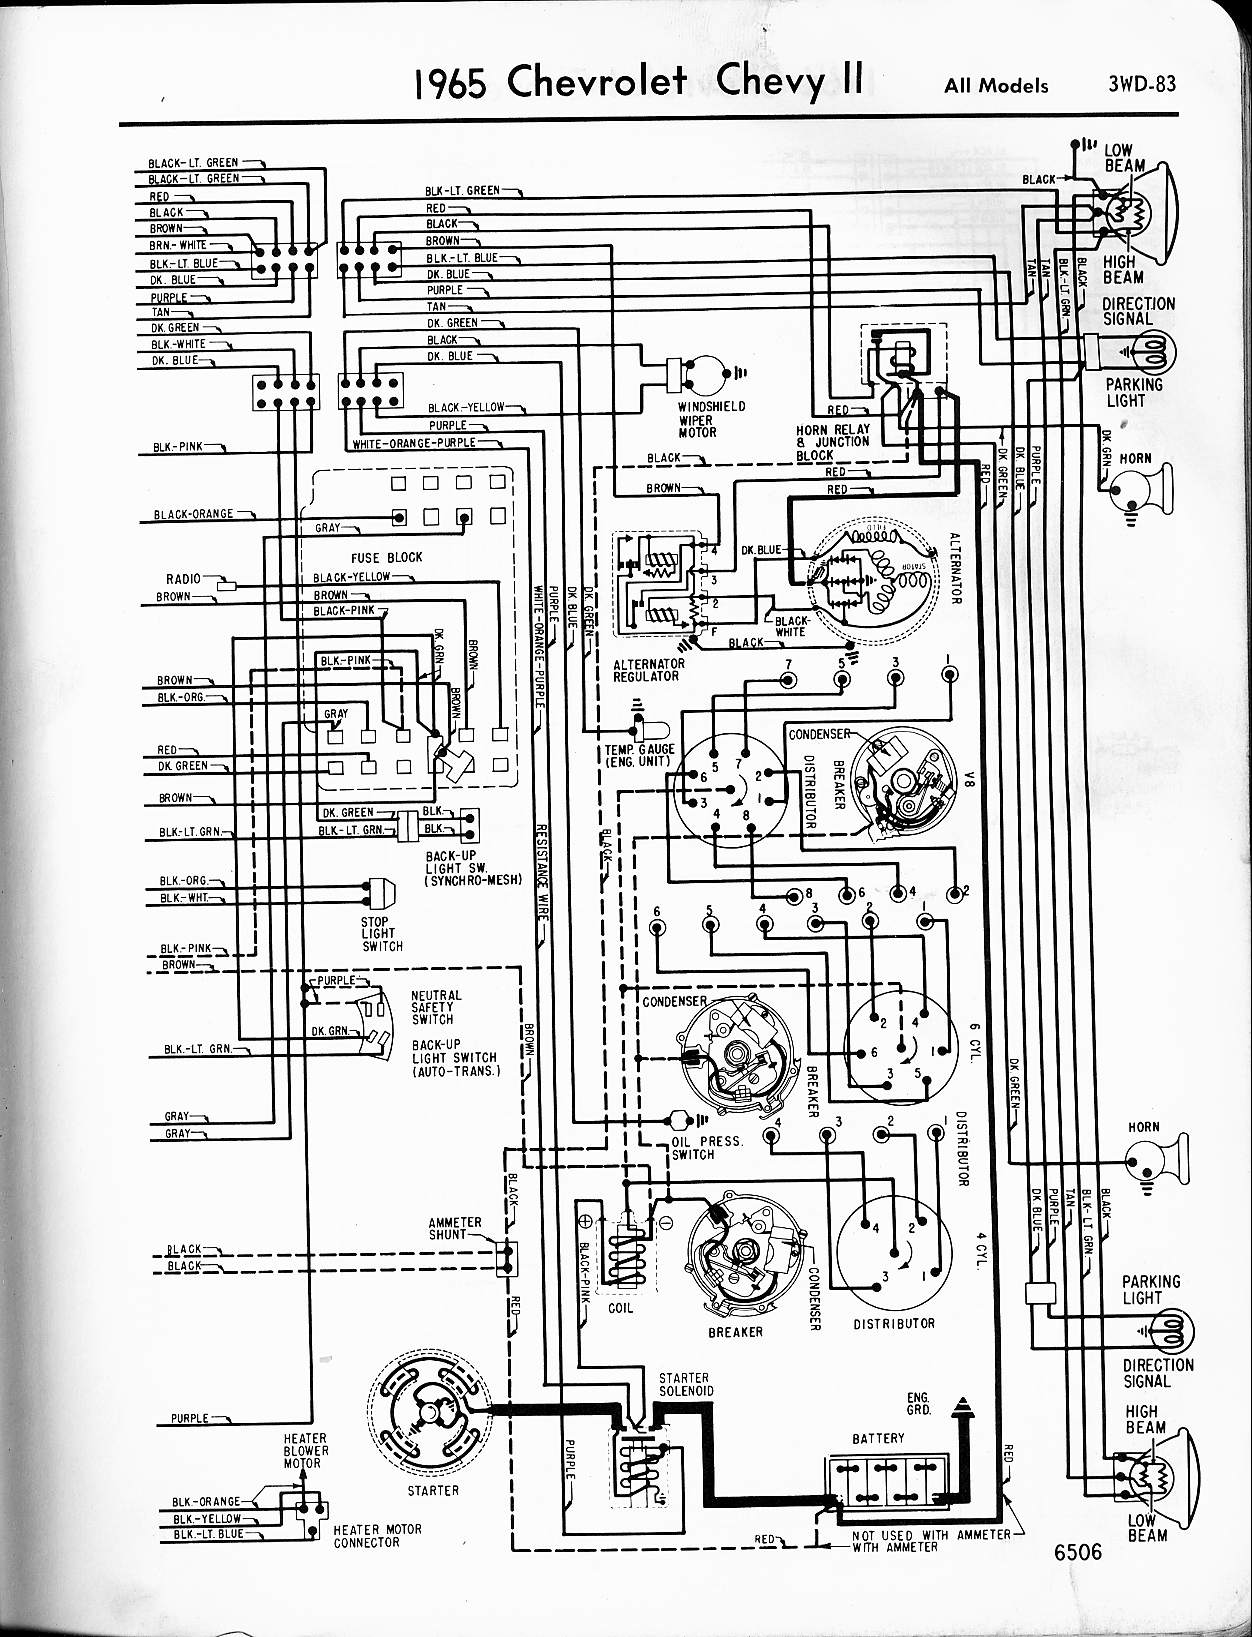 MWireChev65_3WD 083?resize\=665%2C869 70 chevelle wiring diagram image,wiring free download printable,74 Chevelle Wiring Diagram